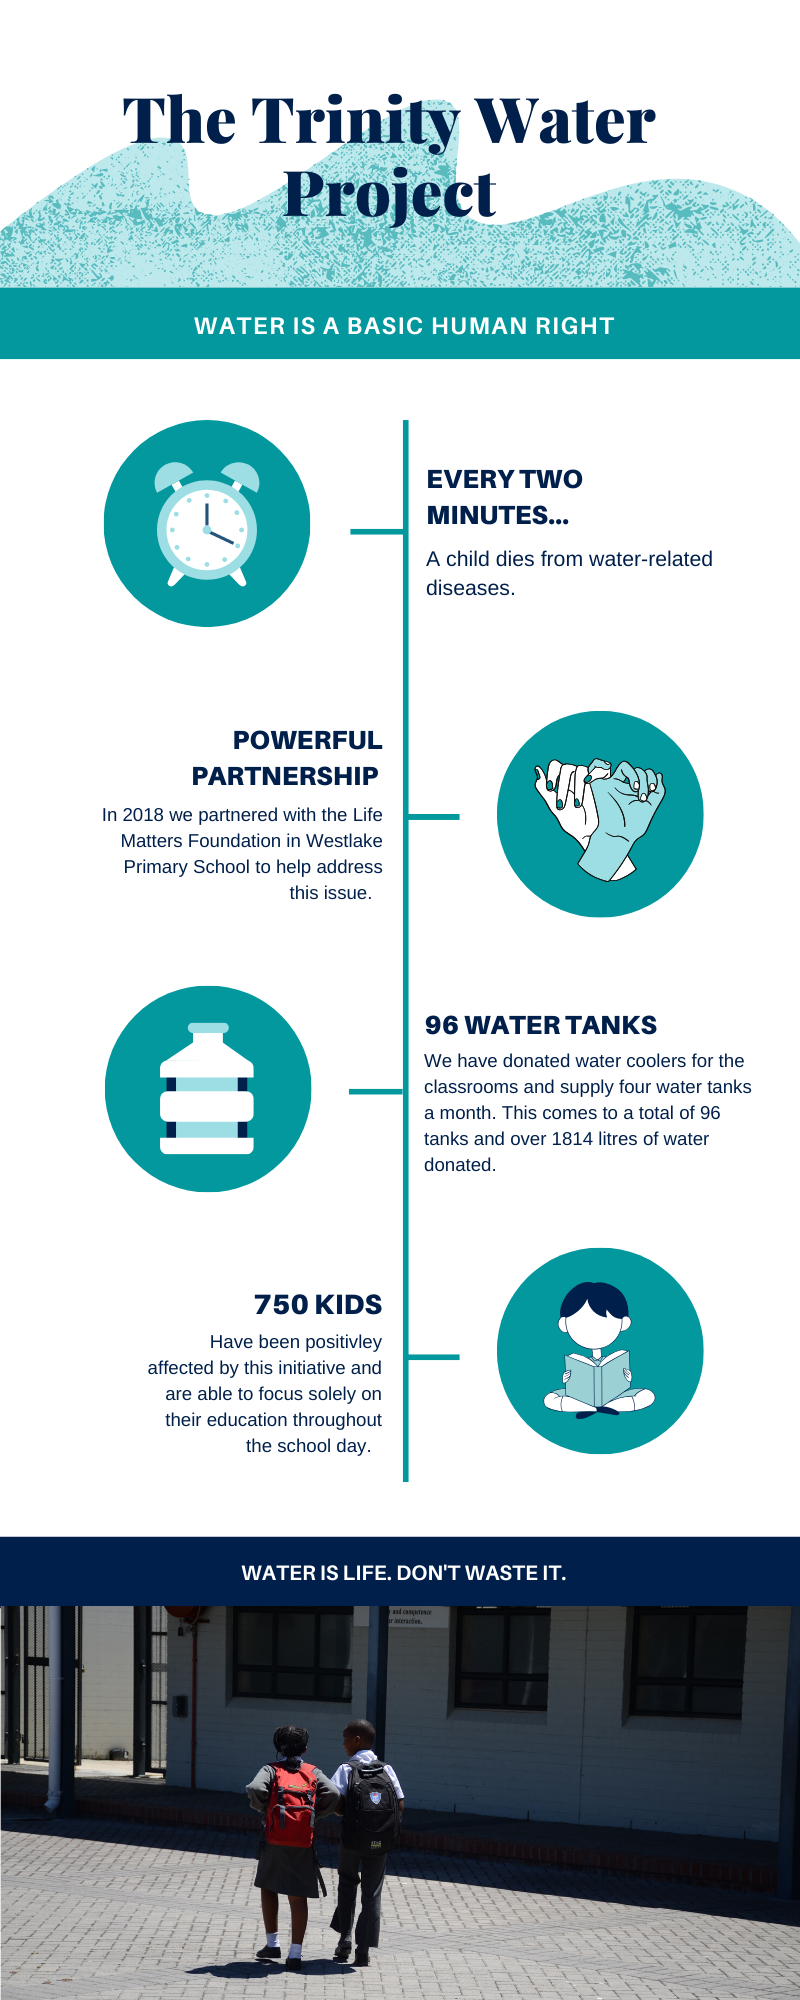 The-Trinity-water-project-infographic-3